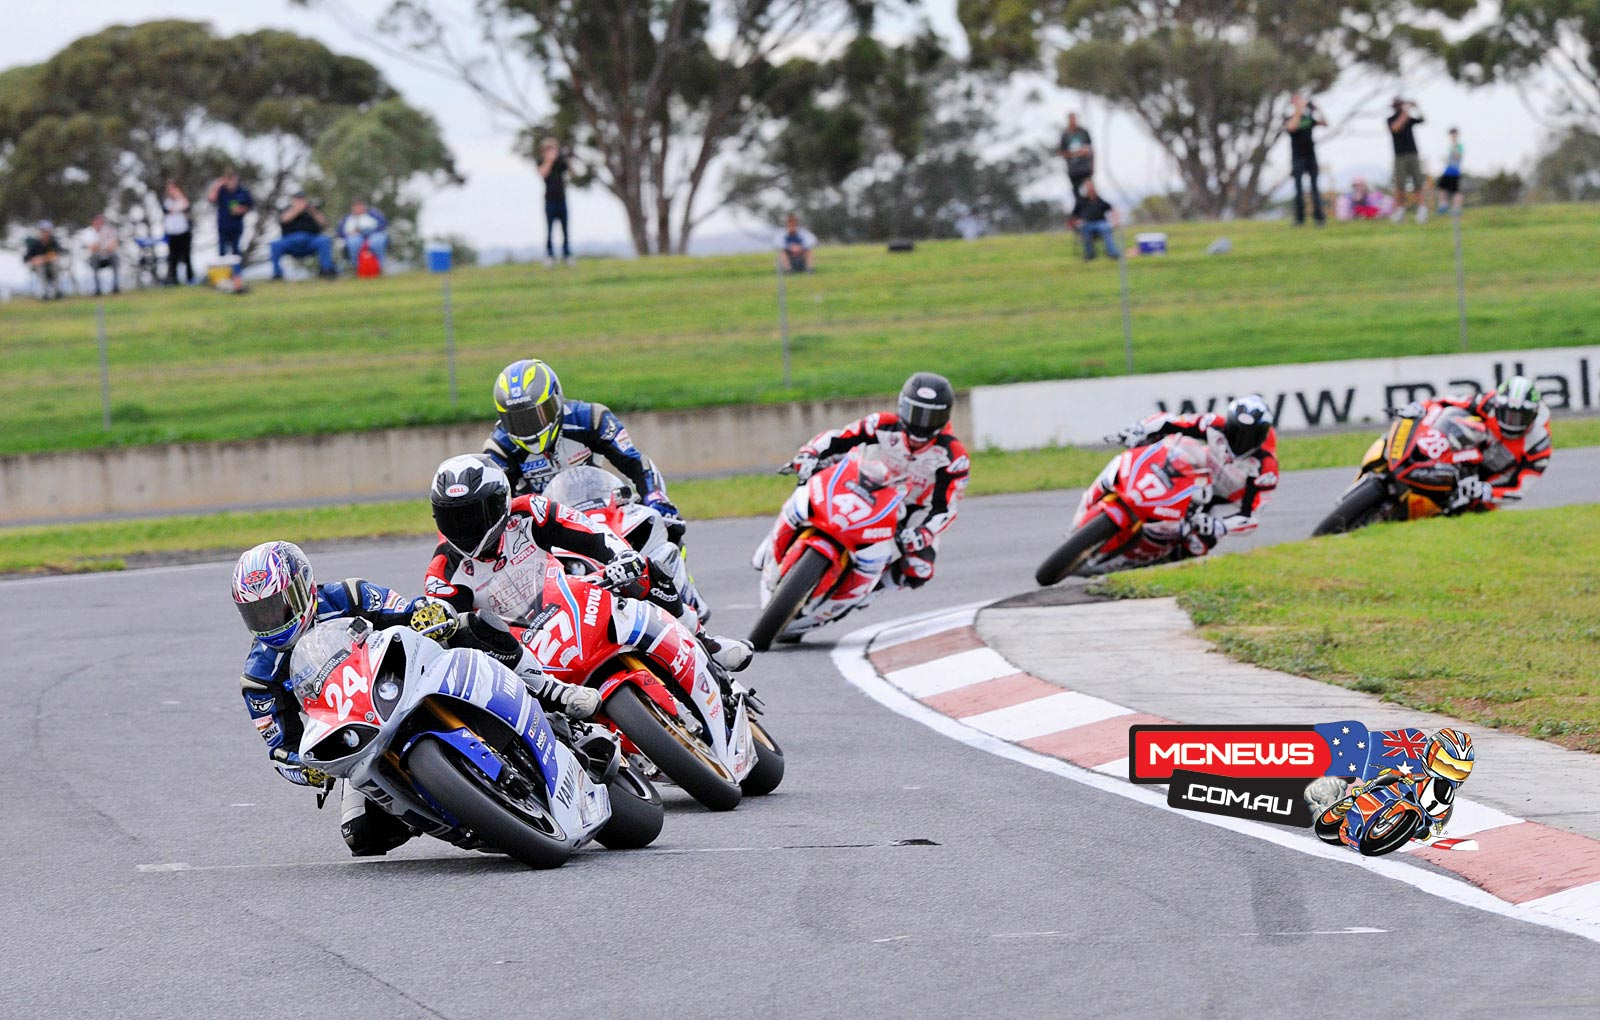 Robbie Bugden leads Jamie Stauffer, Cru Halliday and Wayne Maxwell at Mallala